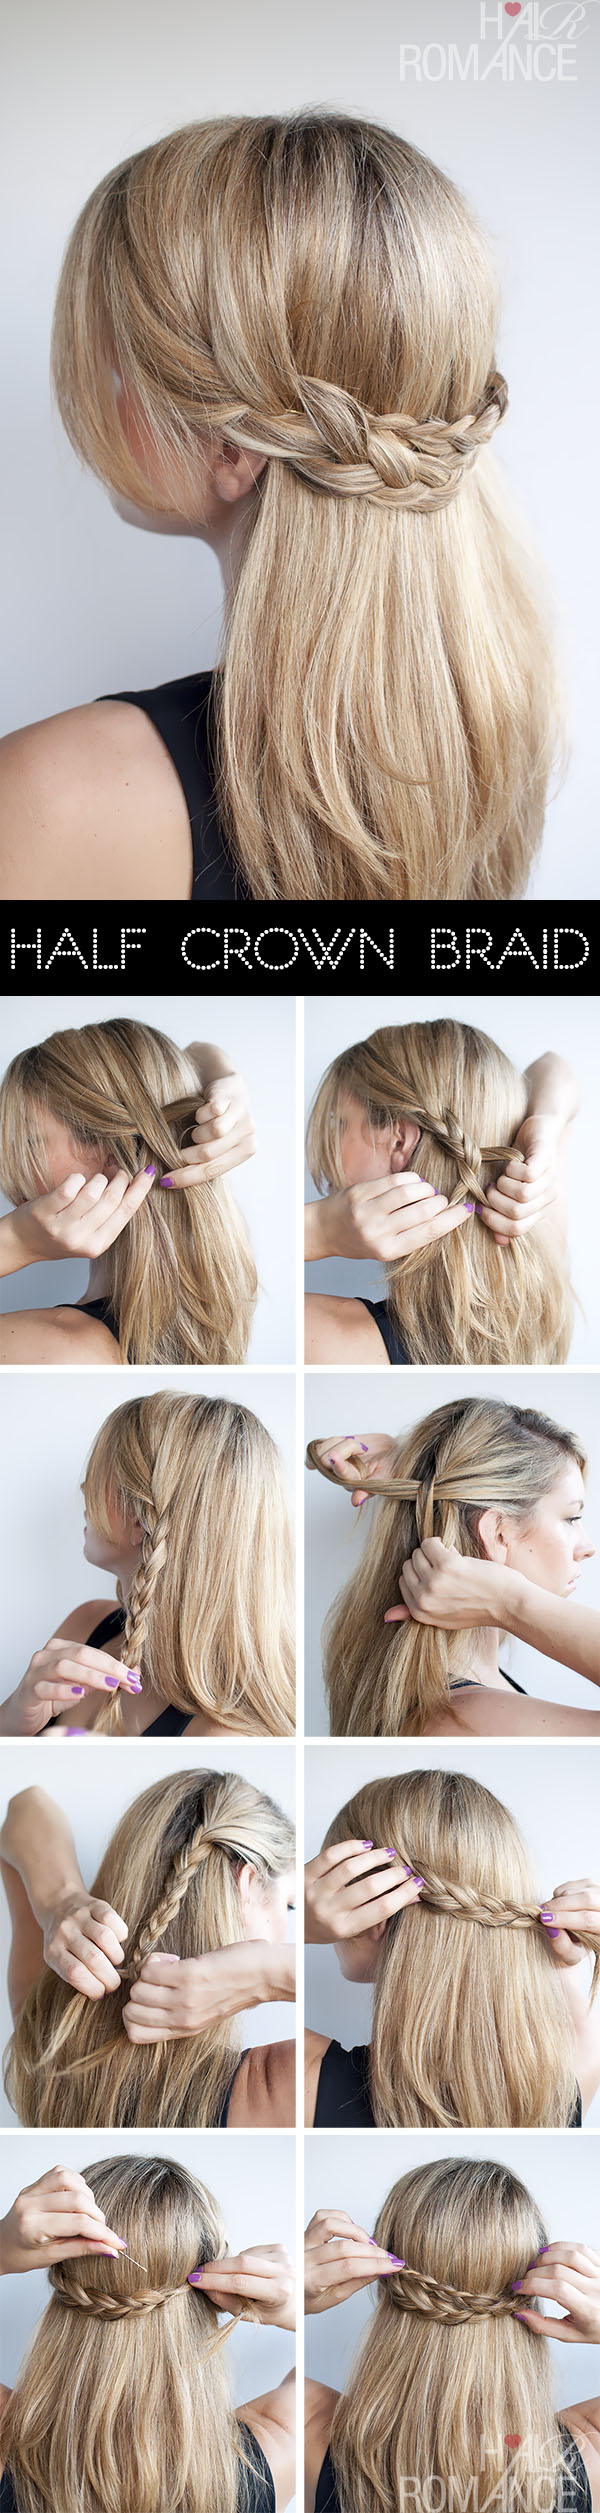 Hair Romance hairstyle tutorial - half crown braid